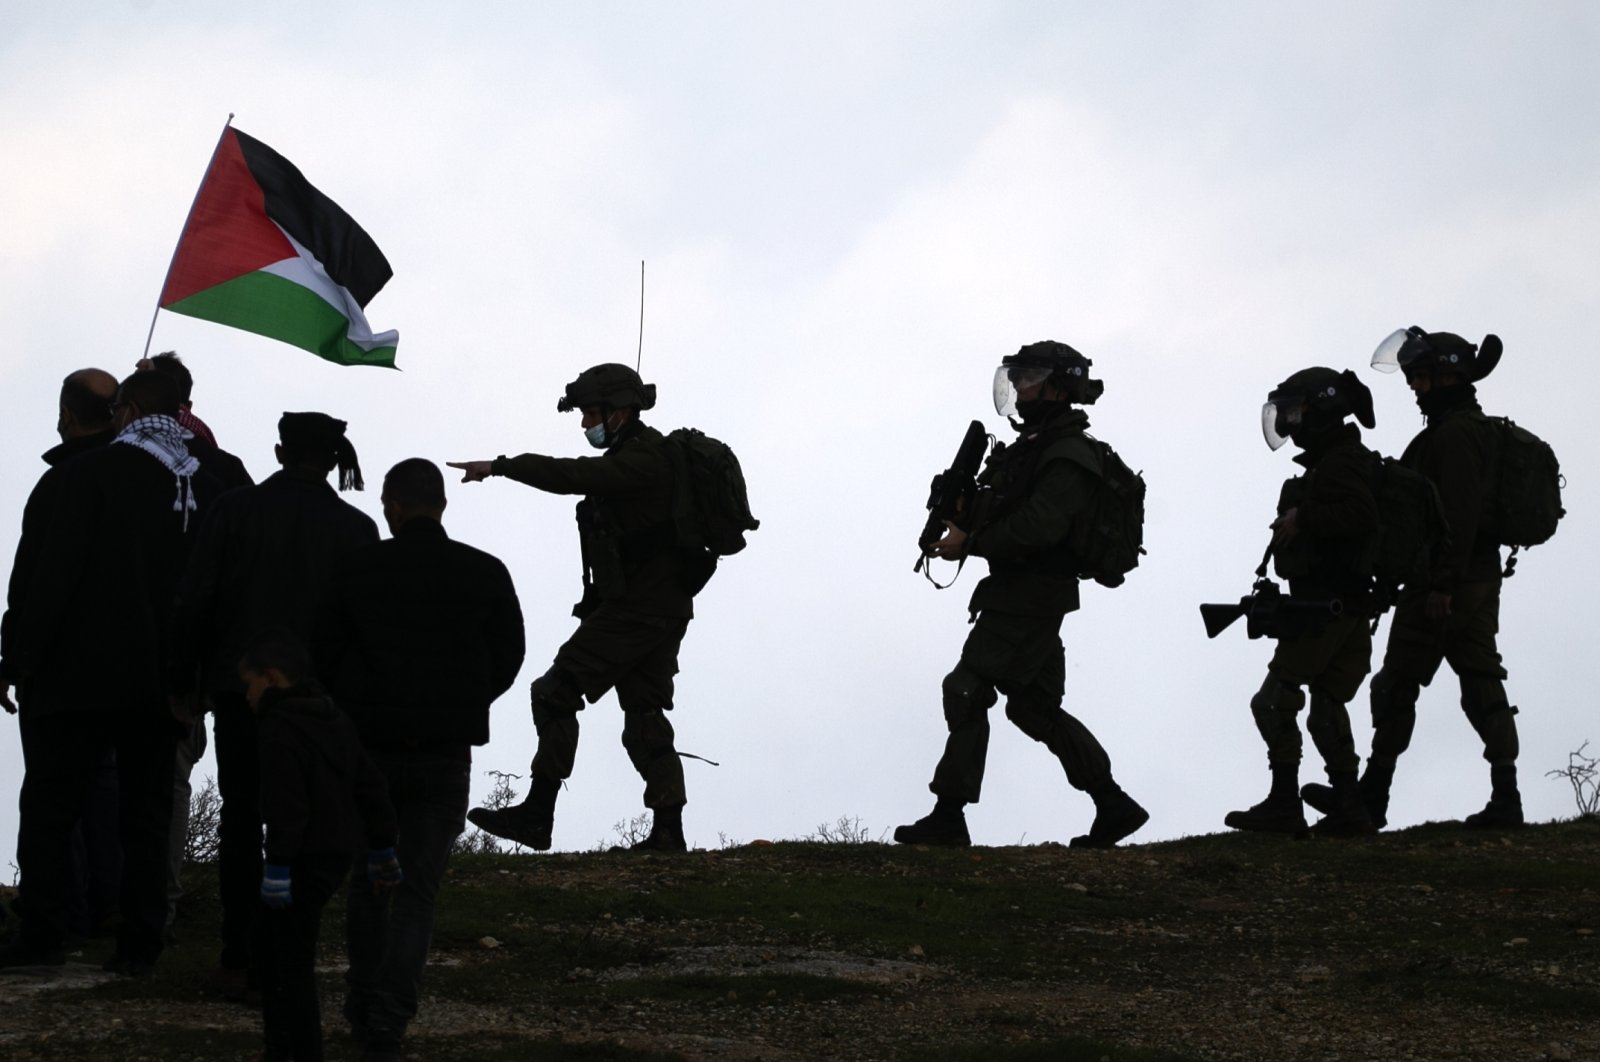 Palestinian protesters clash with Israeli security forces following a demonstration against the expansion of settlements near the village of Beit Dajan, east of Nablus, in the occupied West Bank, Palestine, Feb. 5, 2021. (AFP Photo)